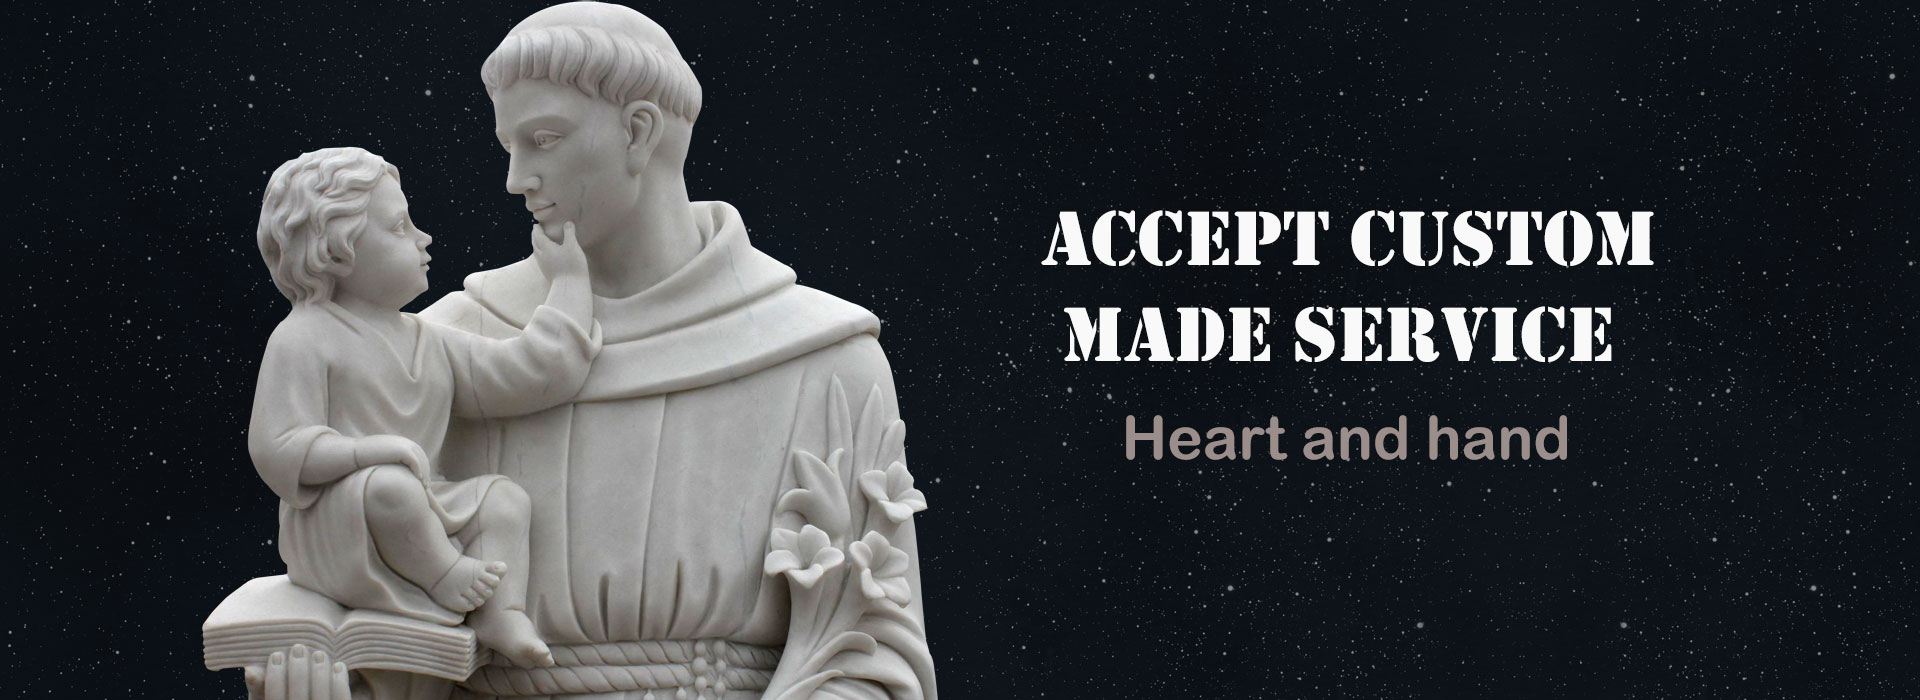 Life Size stone statue saint Anthony statue quotes for Church Asia